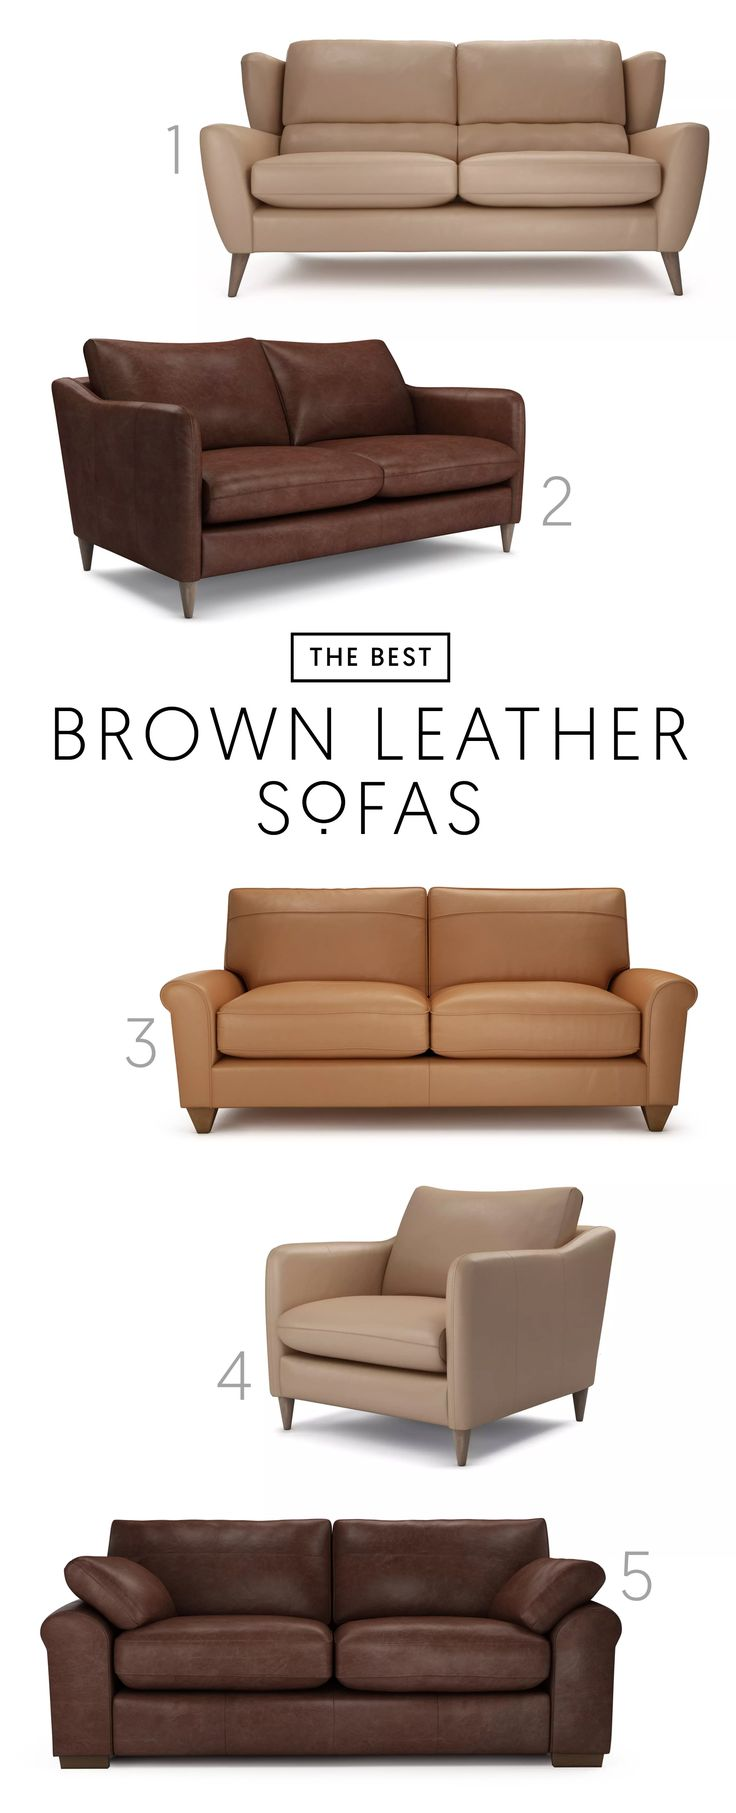 The Best 5 Brown Leather Sofas | A stylish leather sofa is a great investment that you'll want to keep for years. Choose from distressed leathers in deep browns or buttery smooth leather in range of beiges and tans.1. Florence in Smooth Leather - Mushroom  2. Georgia in Distressed Leather - Oak  3. Chloe in Smooth Leather - Camel  4. Georgia in Smooth Leather - Mushroom  5. Sophia in Distressed Leather - Oak. #theloungeco #sofa #interiorinspiration